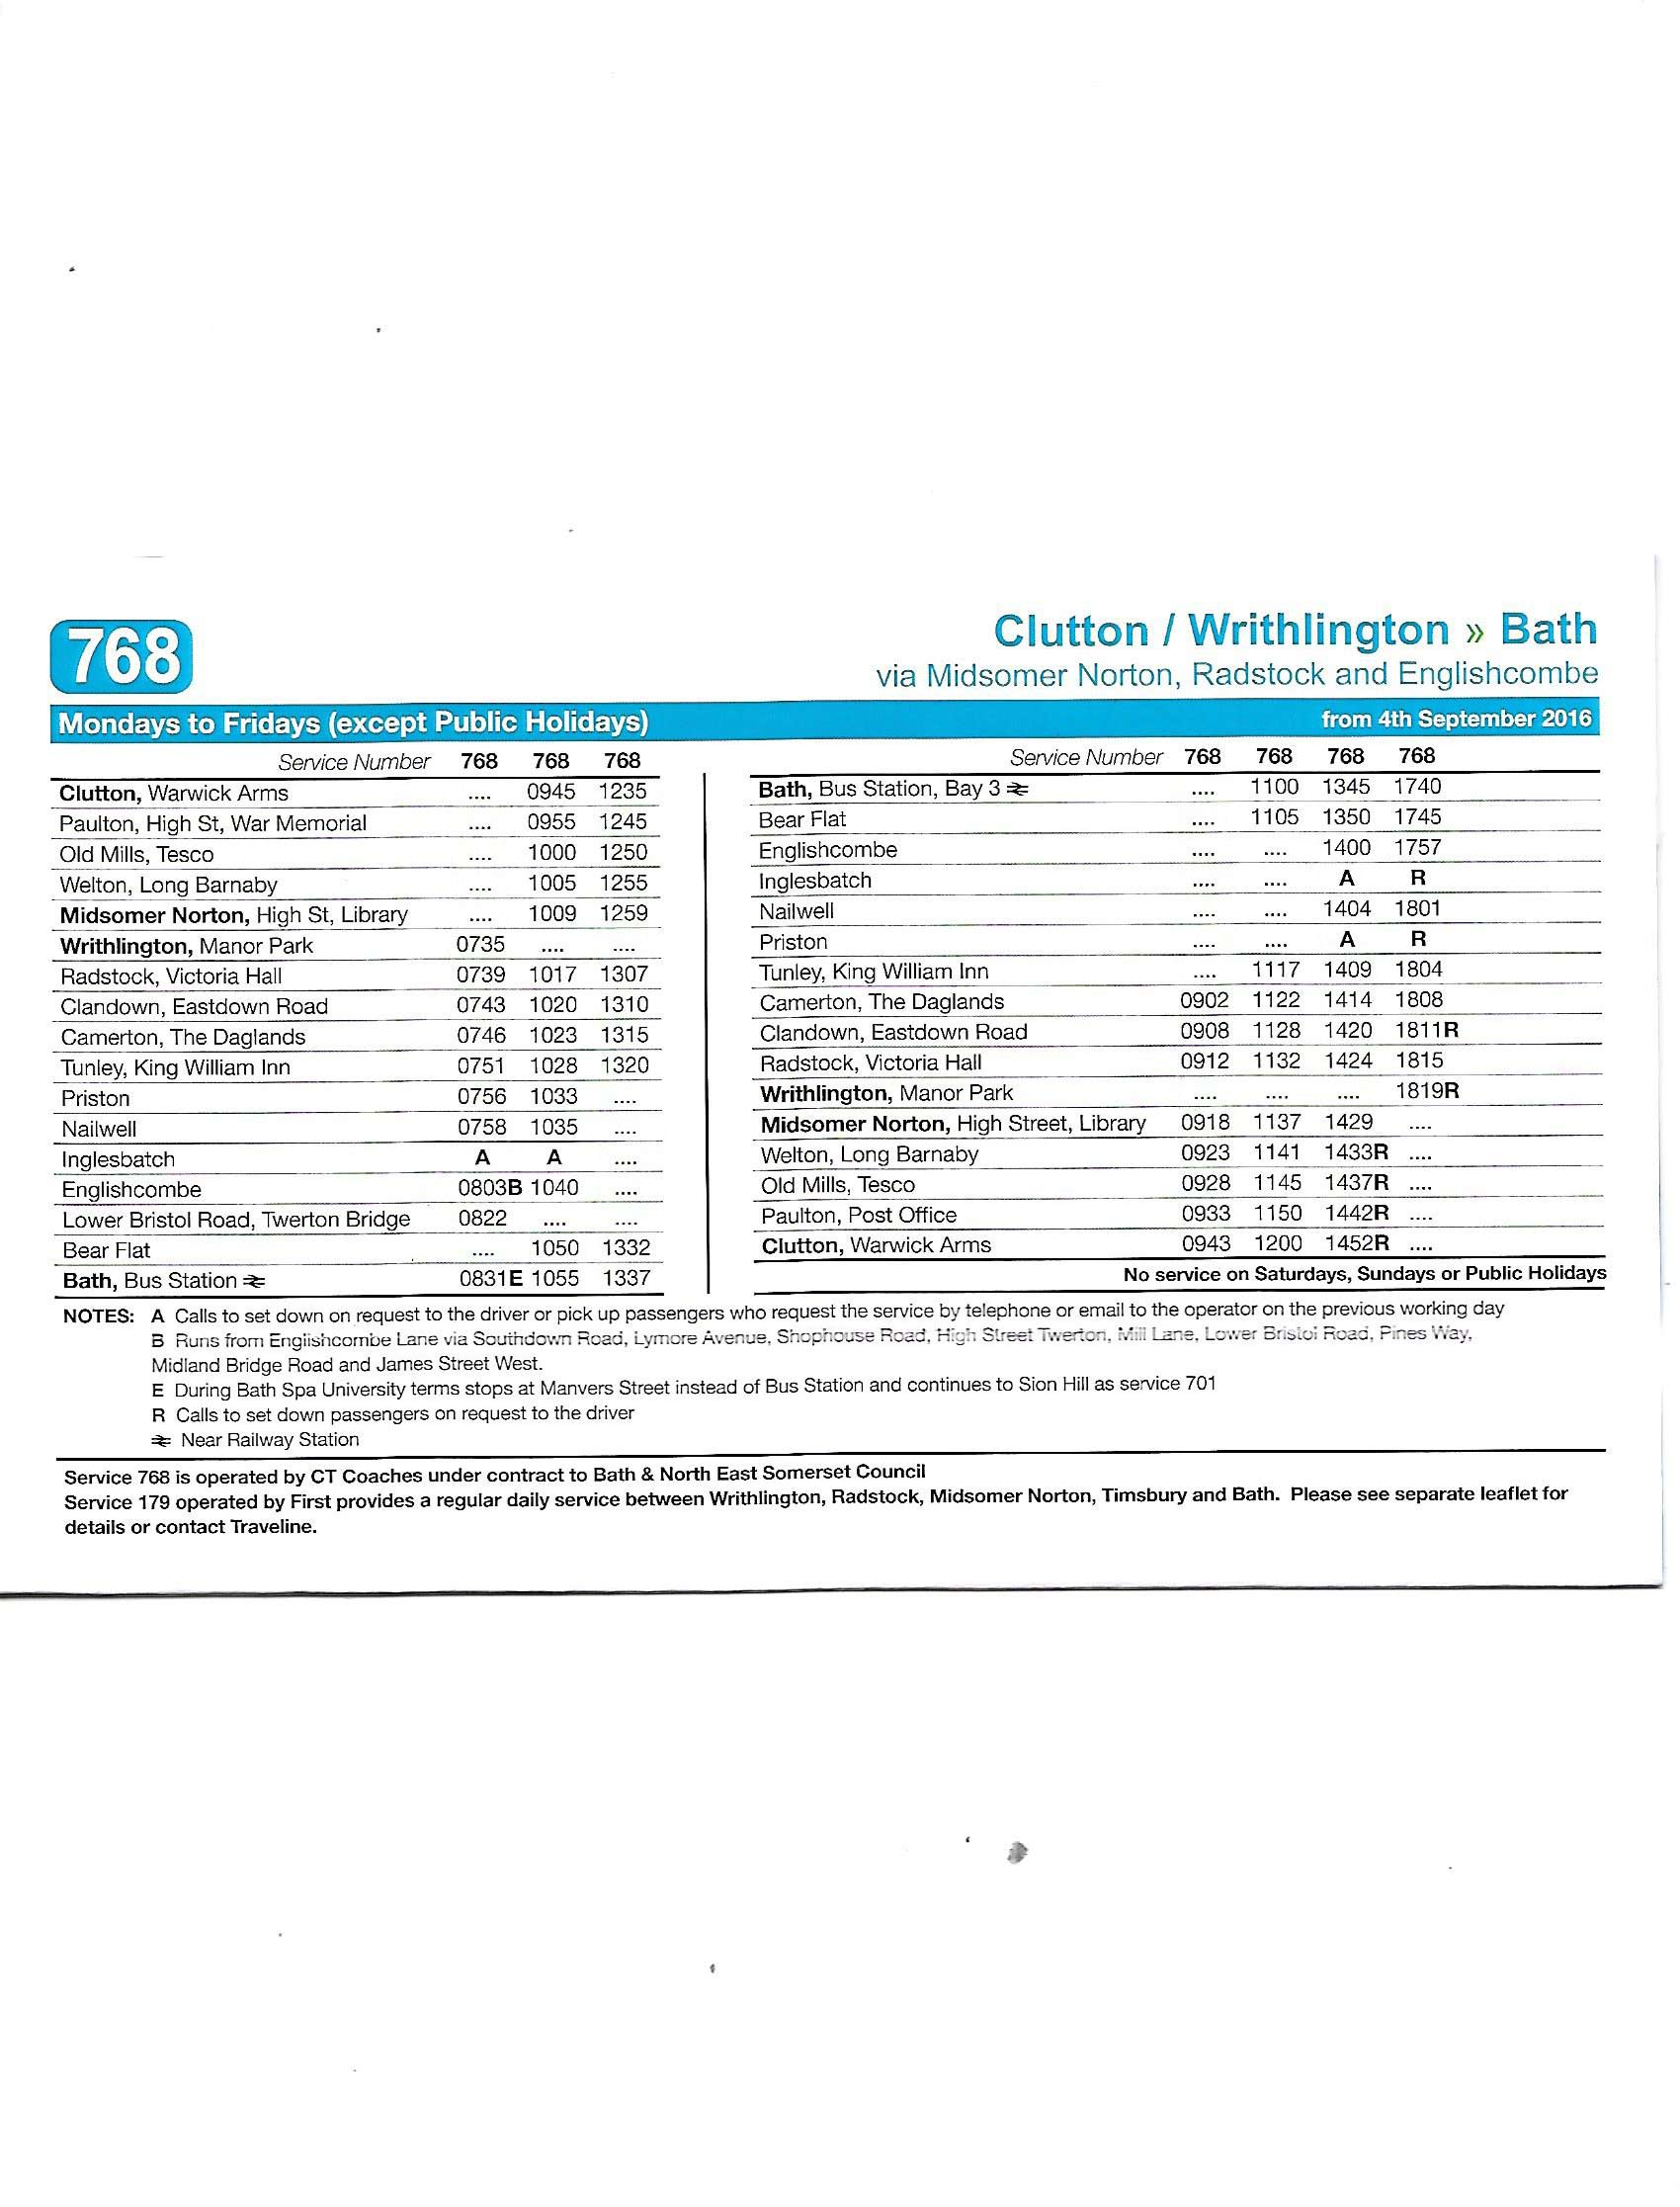 768 bus bath timetable - ct coaches